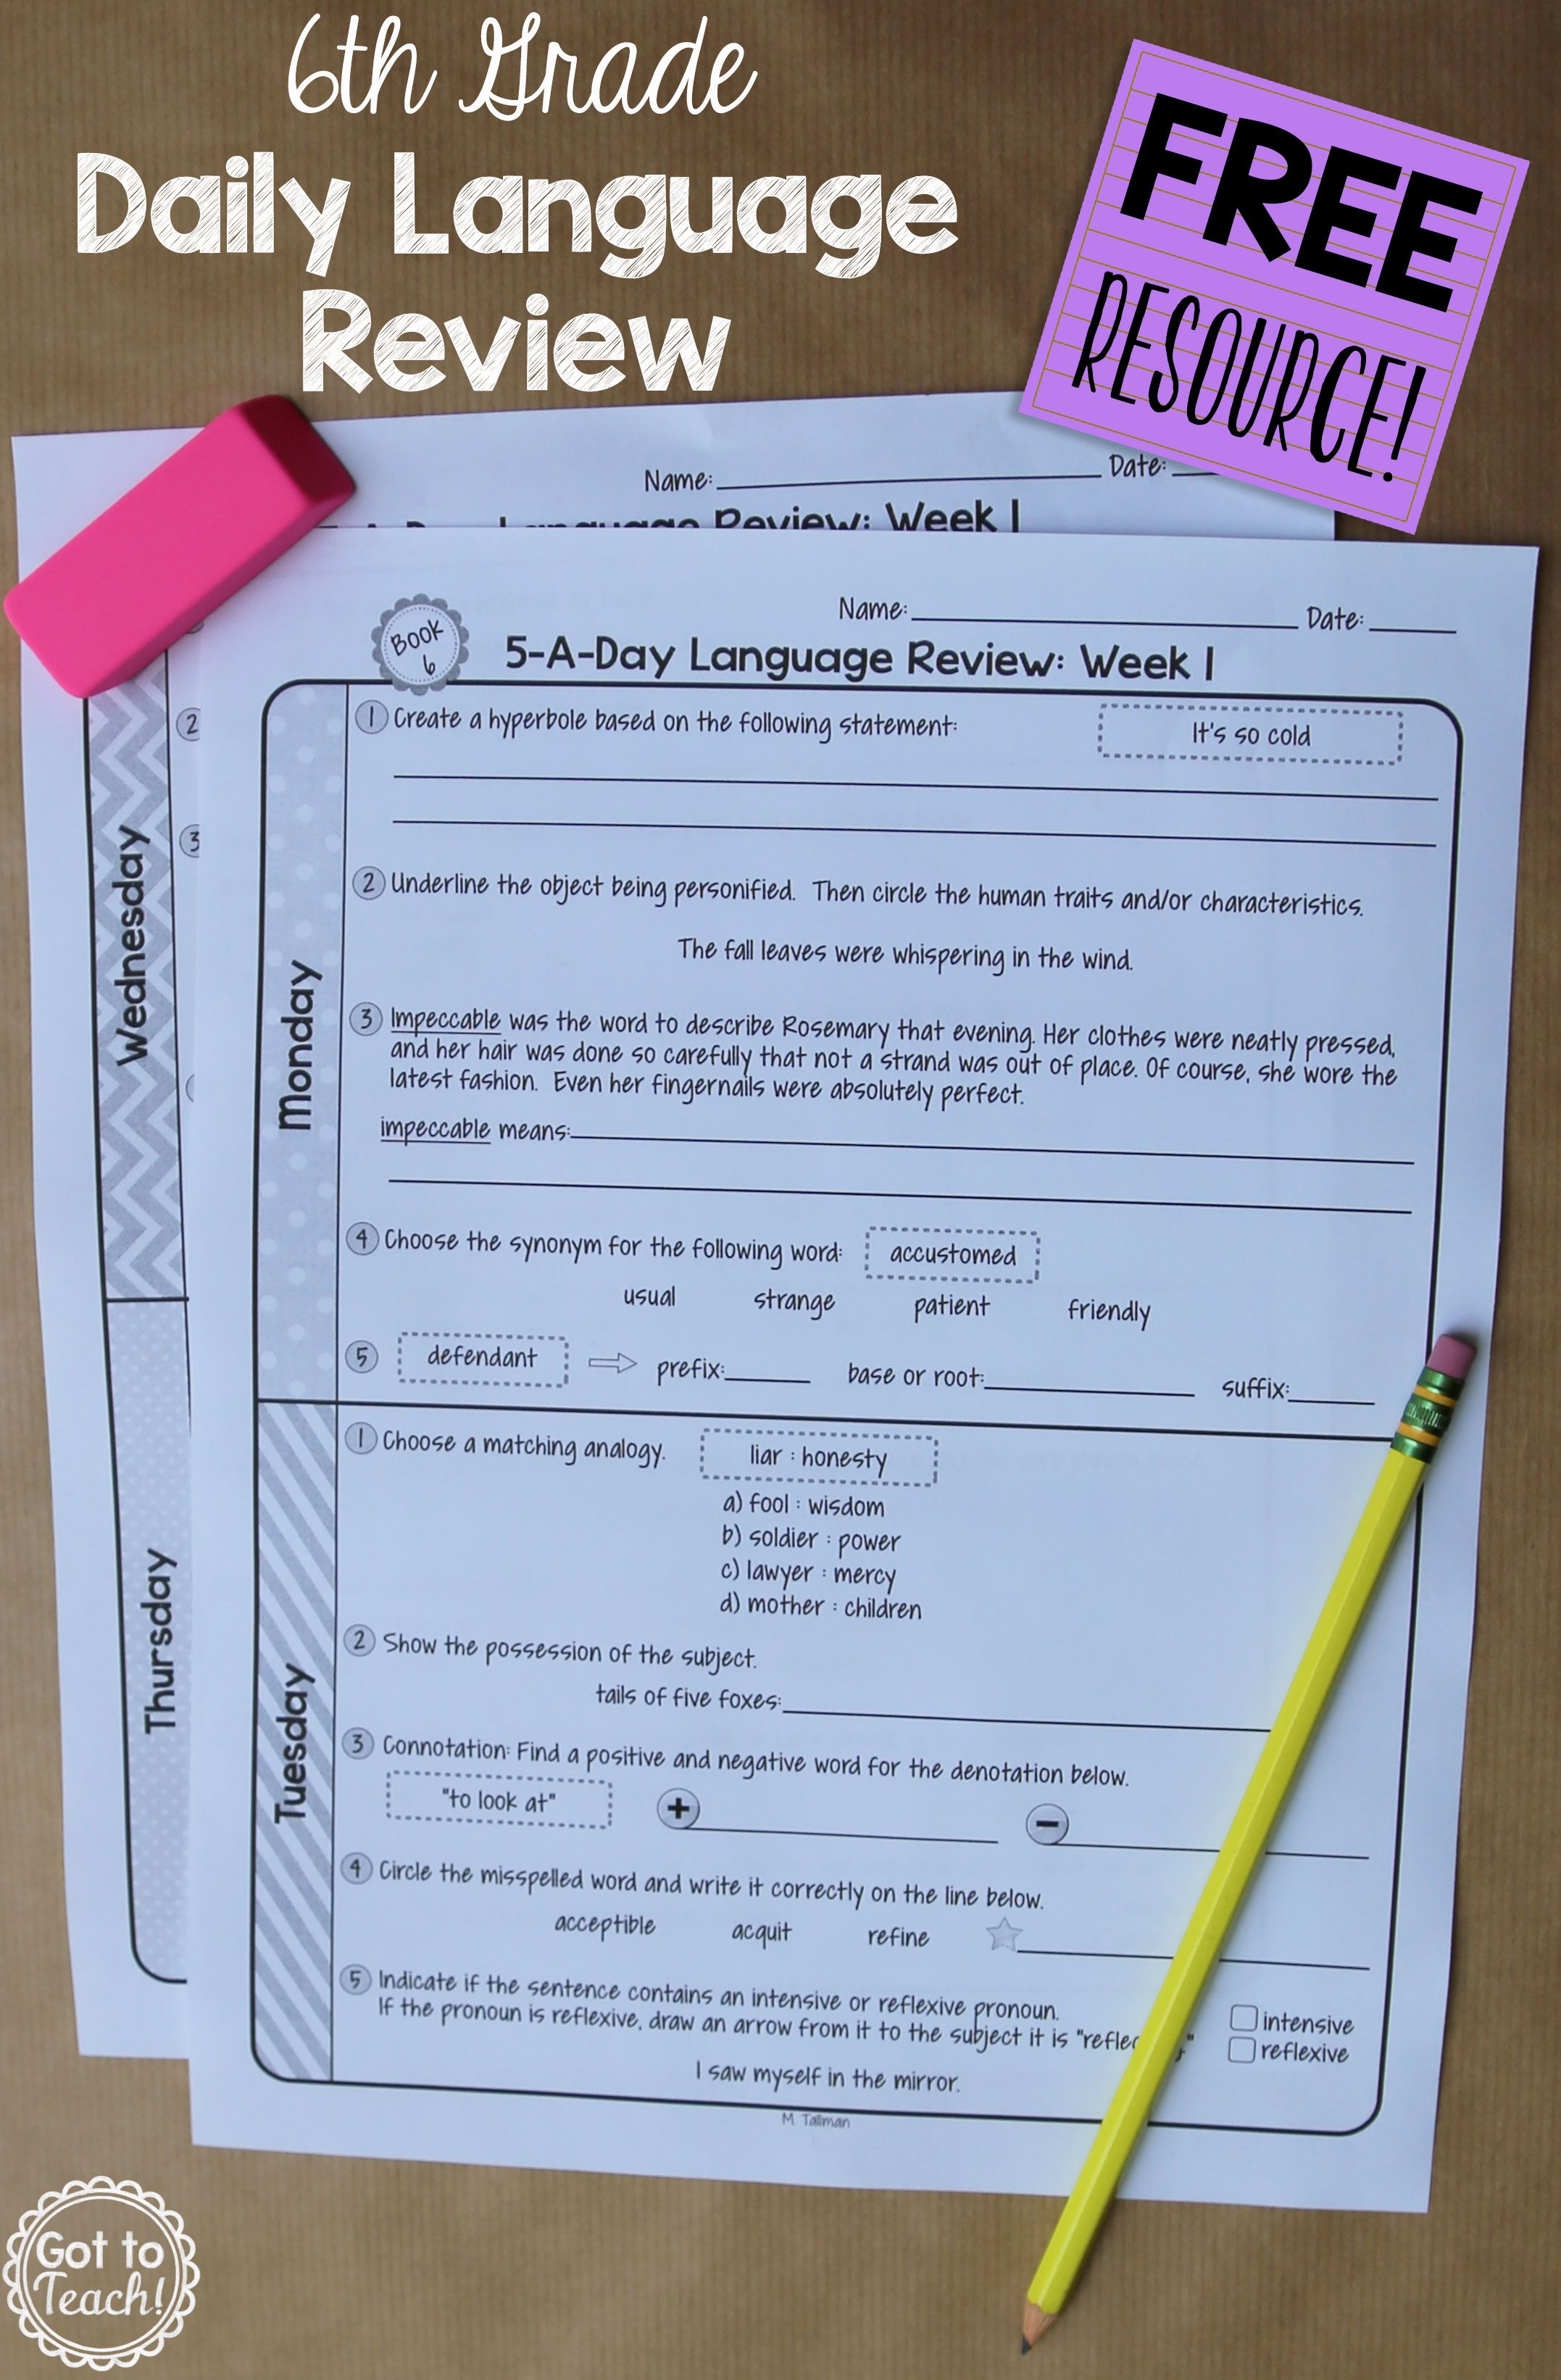 A Free Daily Language Review For 6th Grade Review Important Grammar And Vocabulary Skills Each